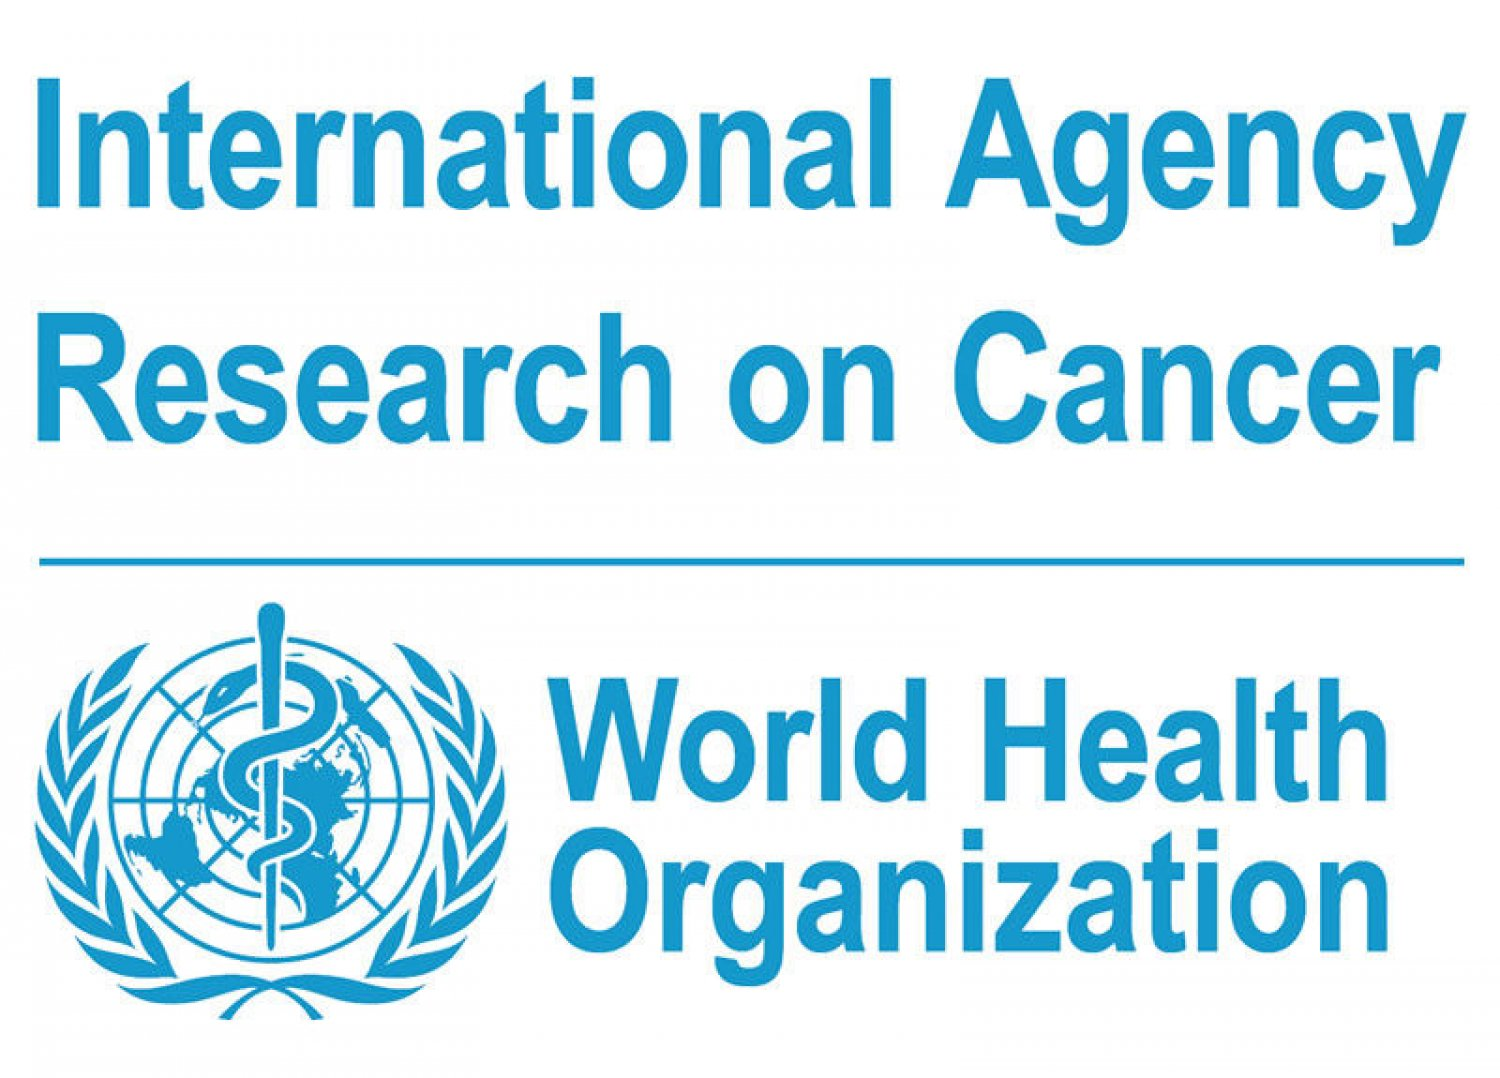 Registre des Cancers - Poitou-Charentes International Agency Research on Cancer - World Health Organization